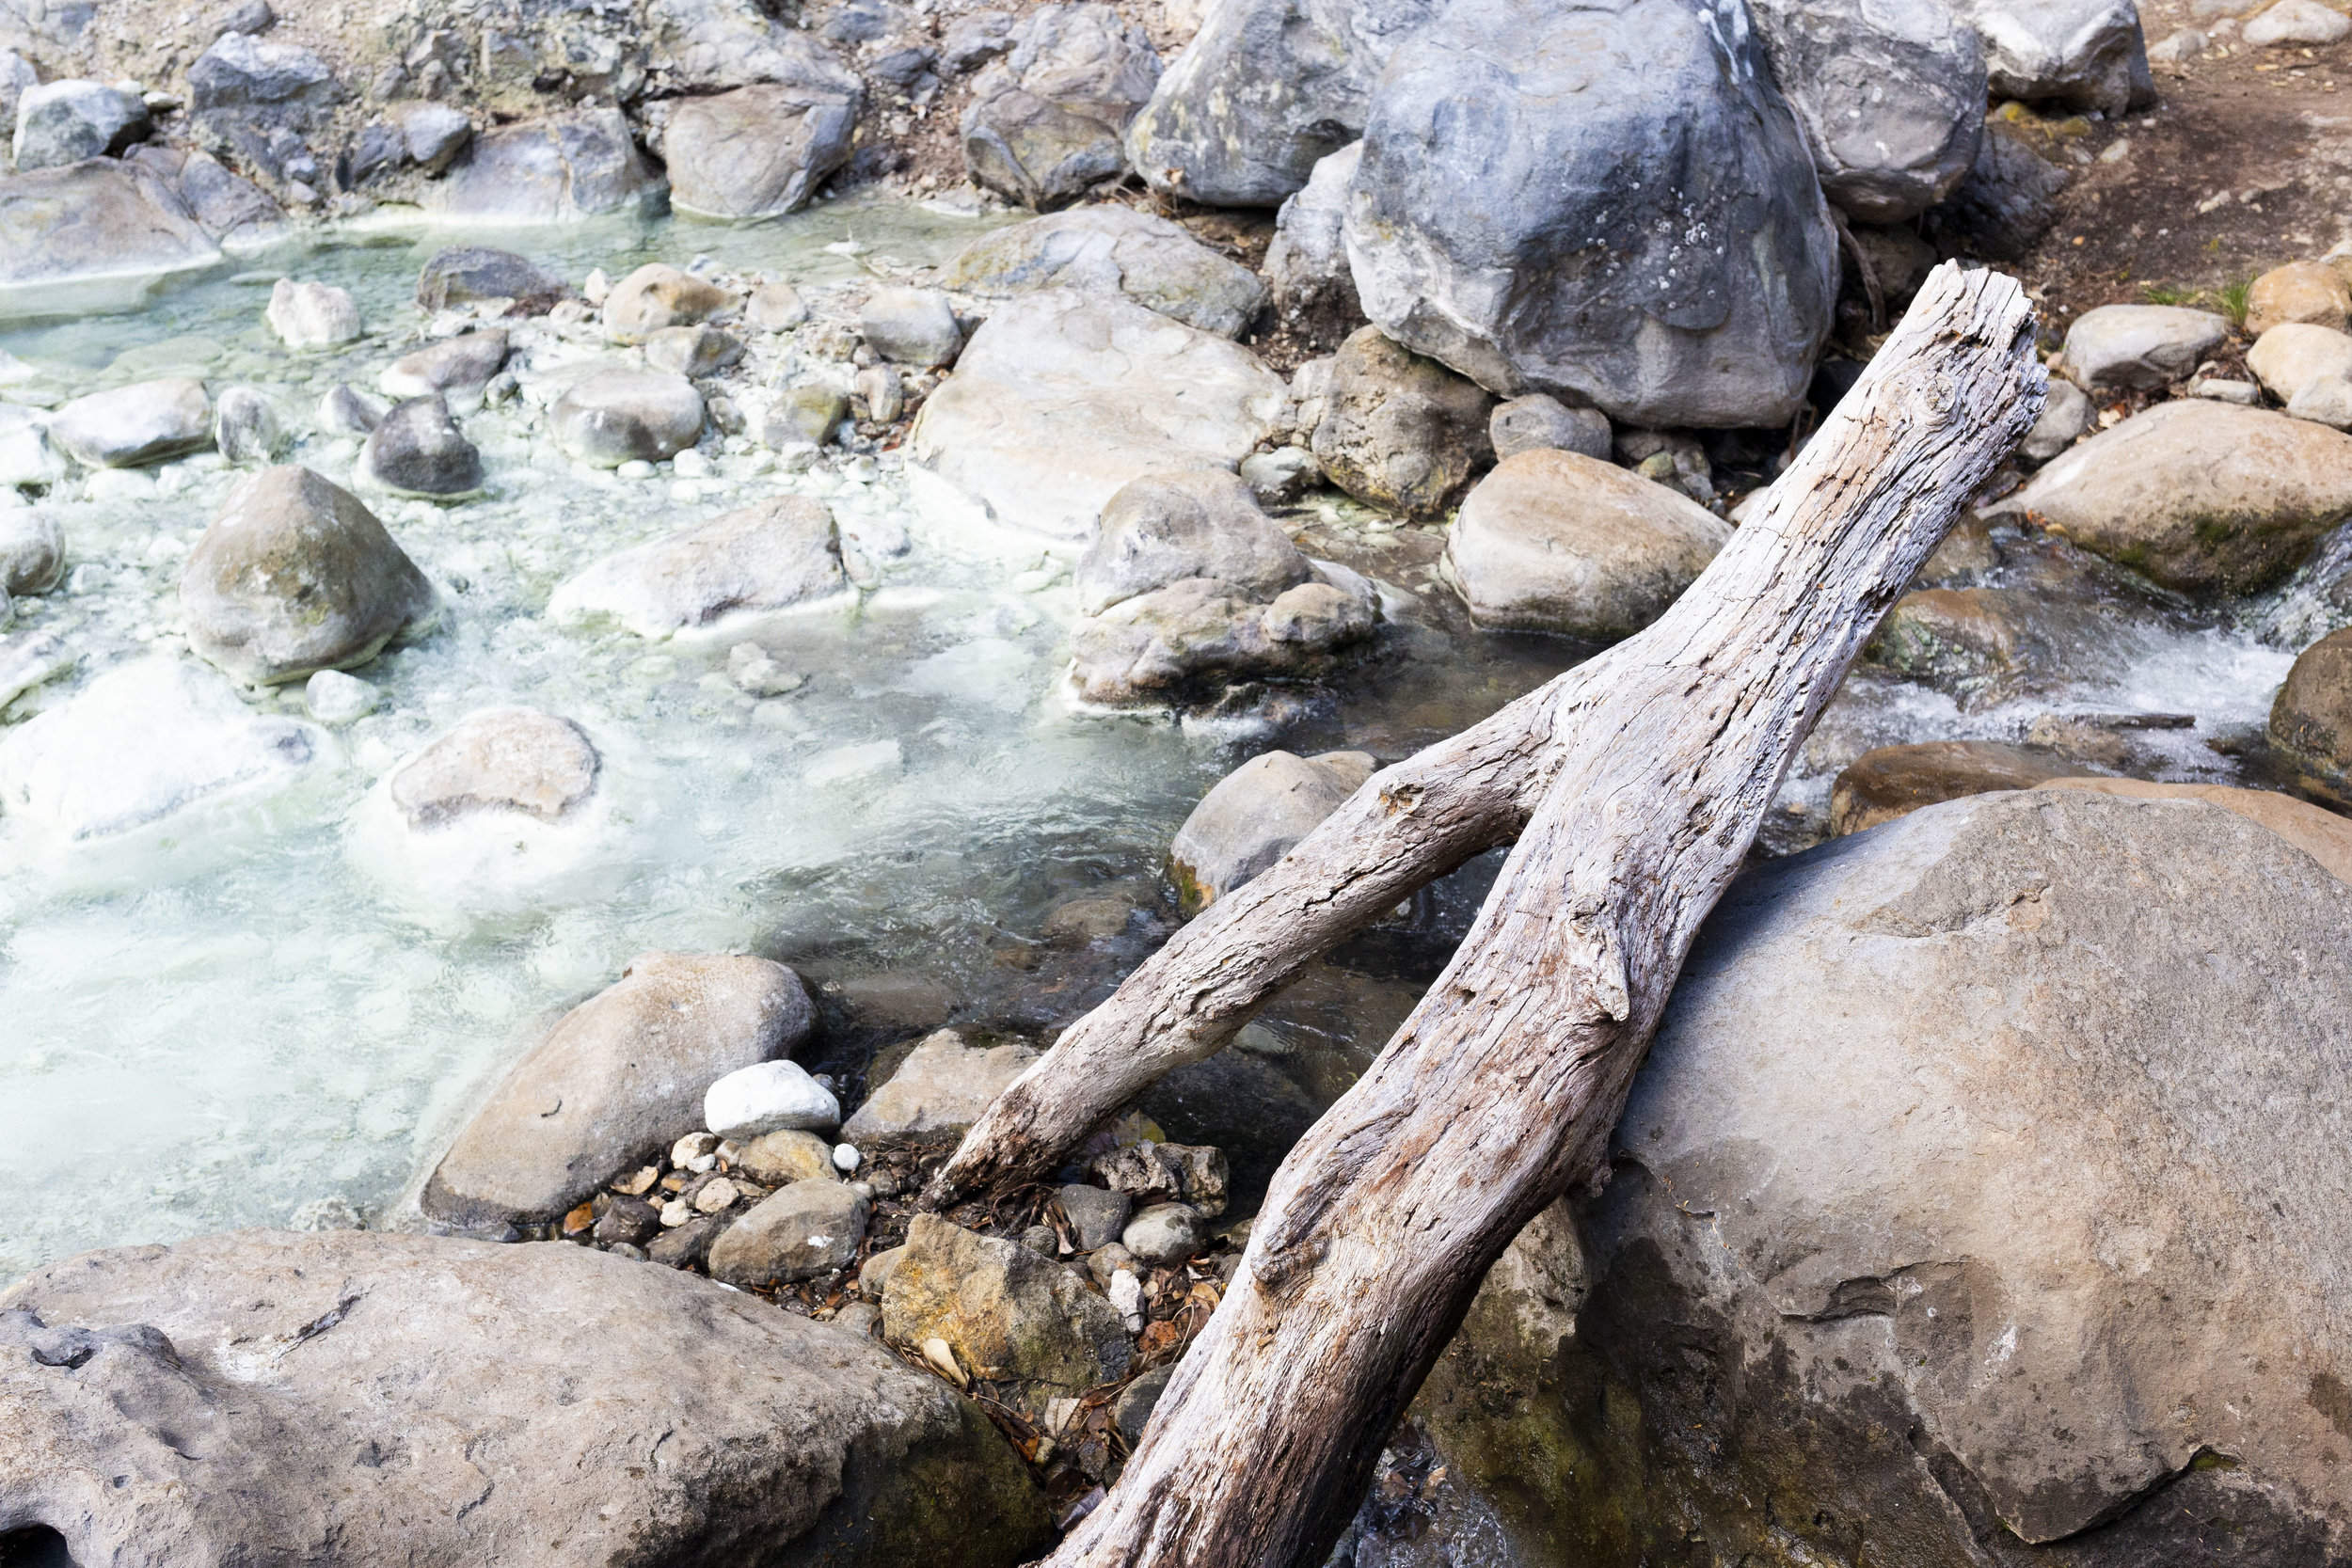 The color of the hot springs was lovely, but the atmosphere was strangely lonely.